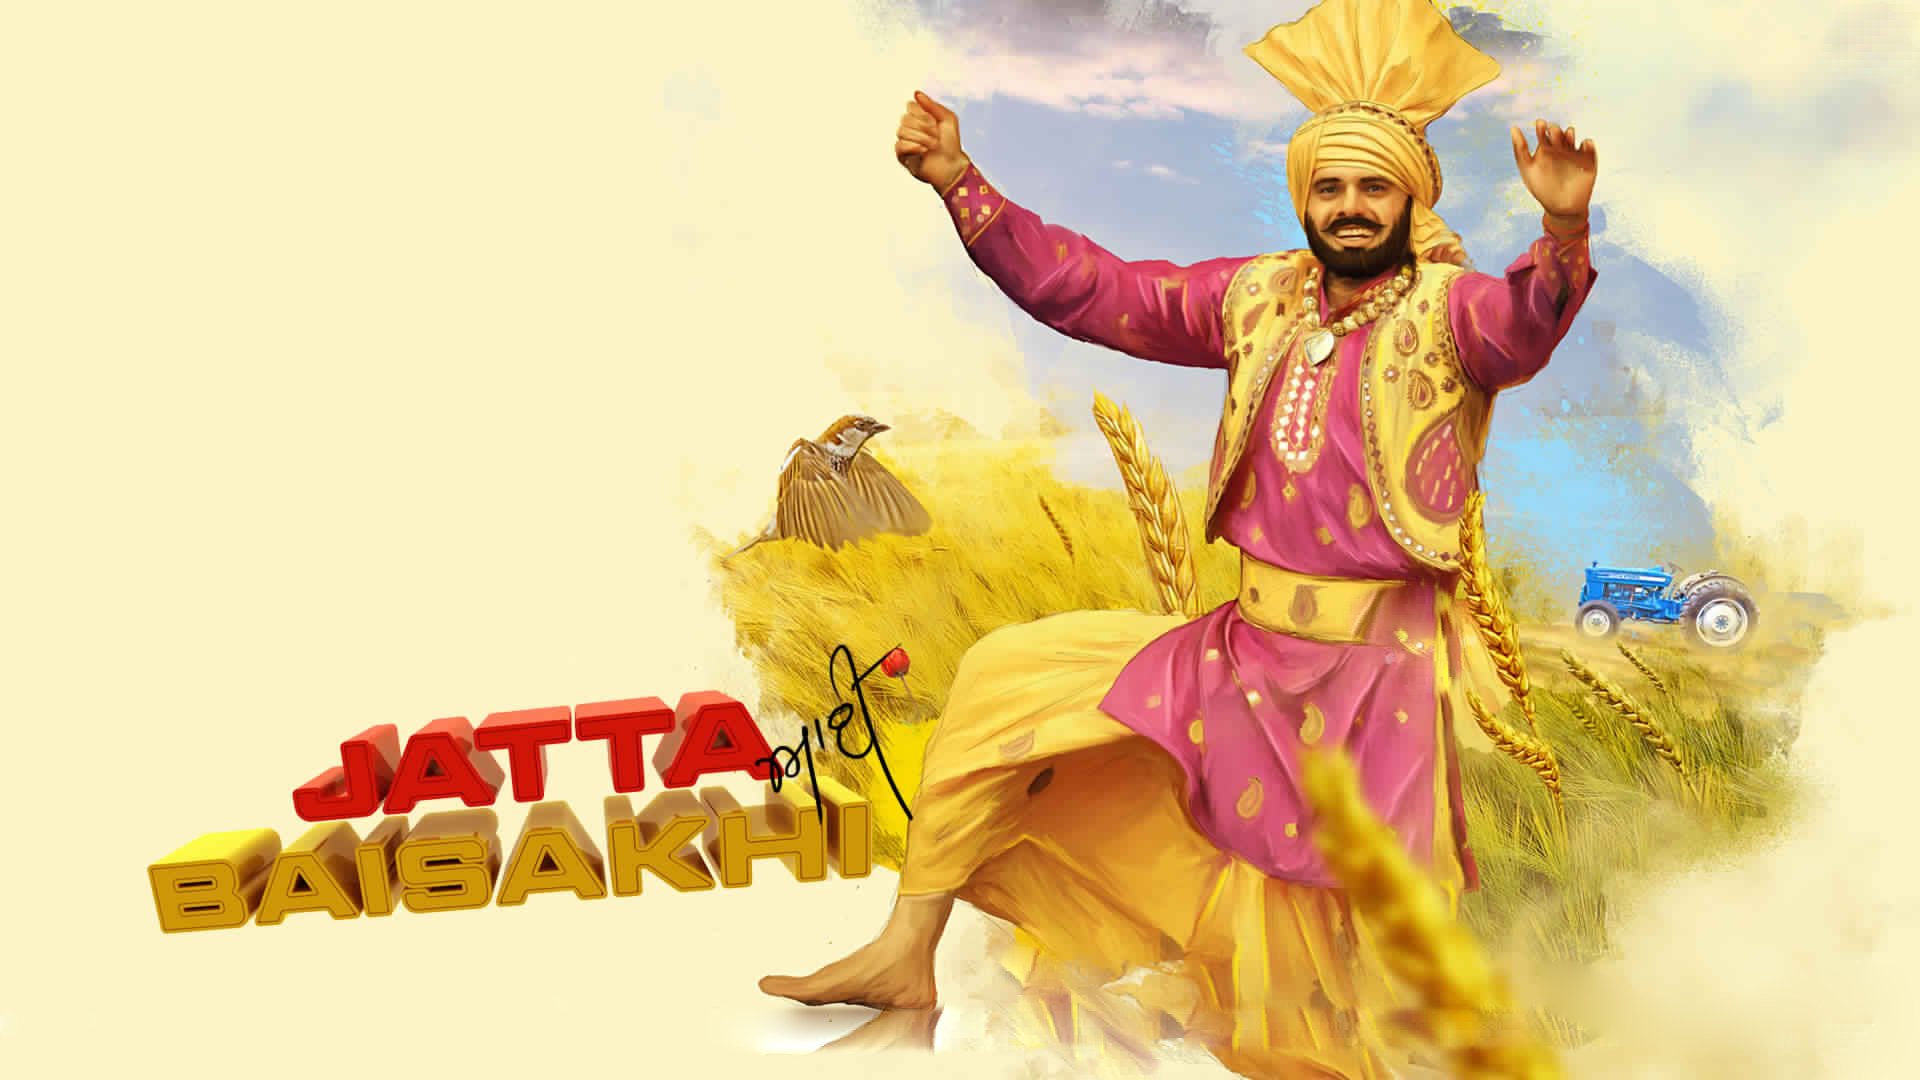 Happy Baisakhi Dancing Man Image